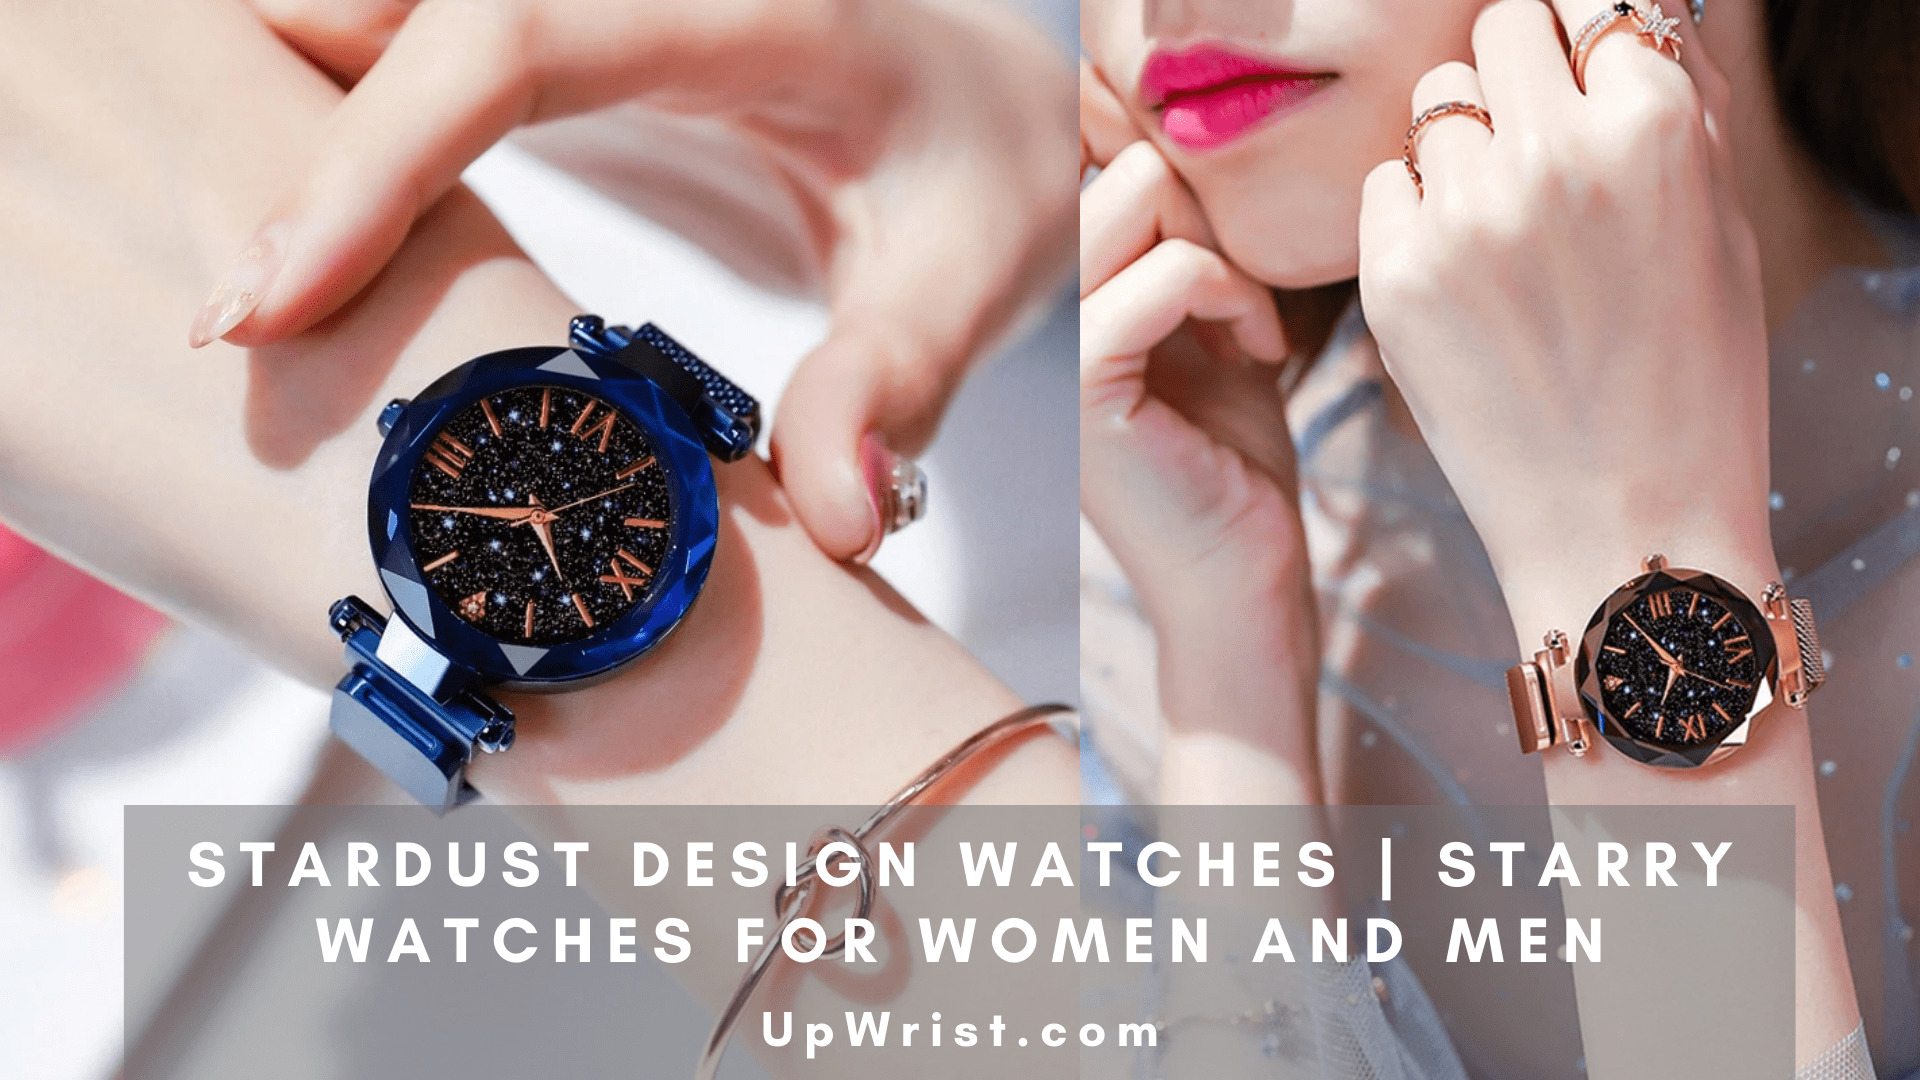 Stardust Design Watches | Starry Watches for Women and Men